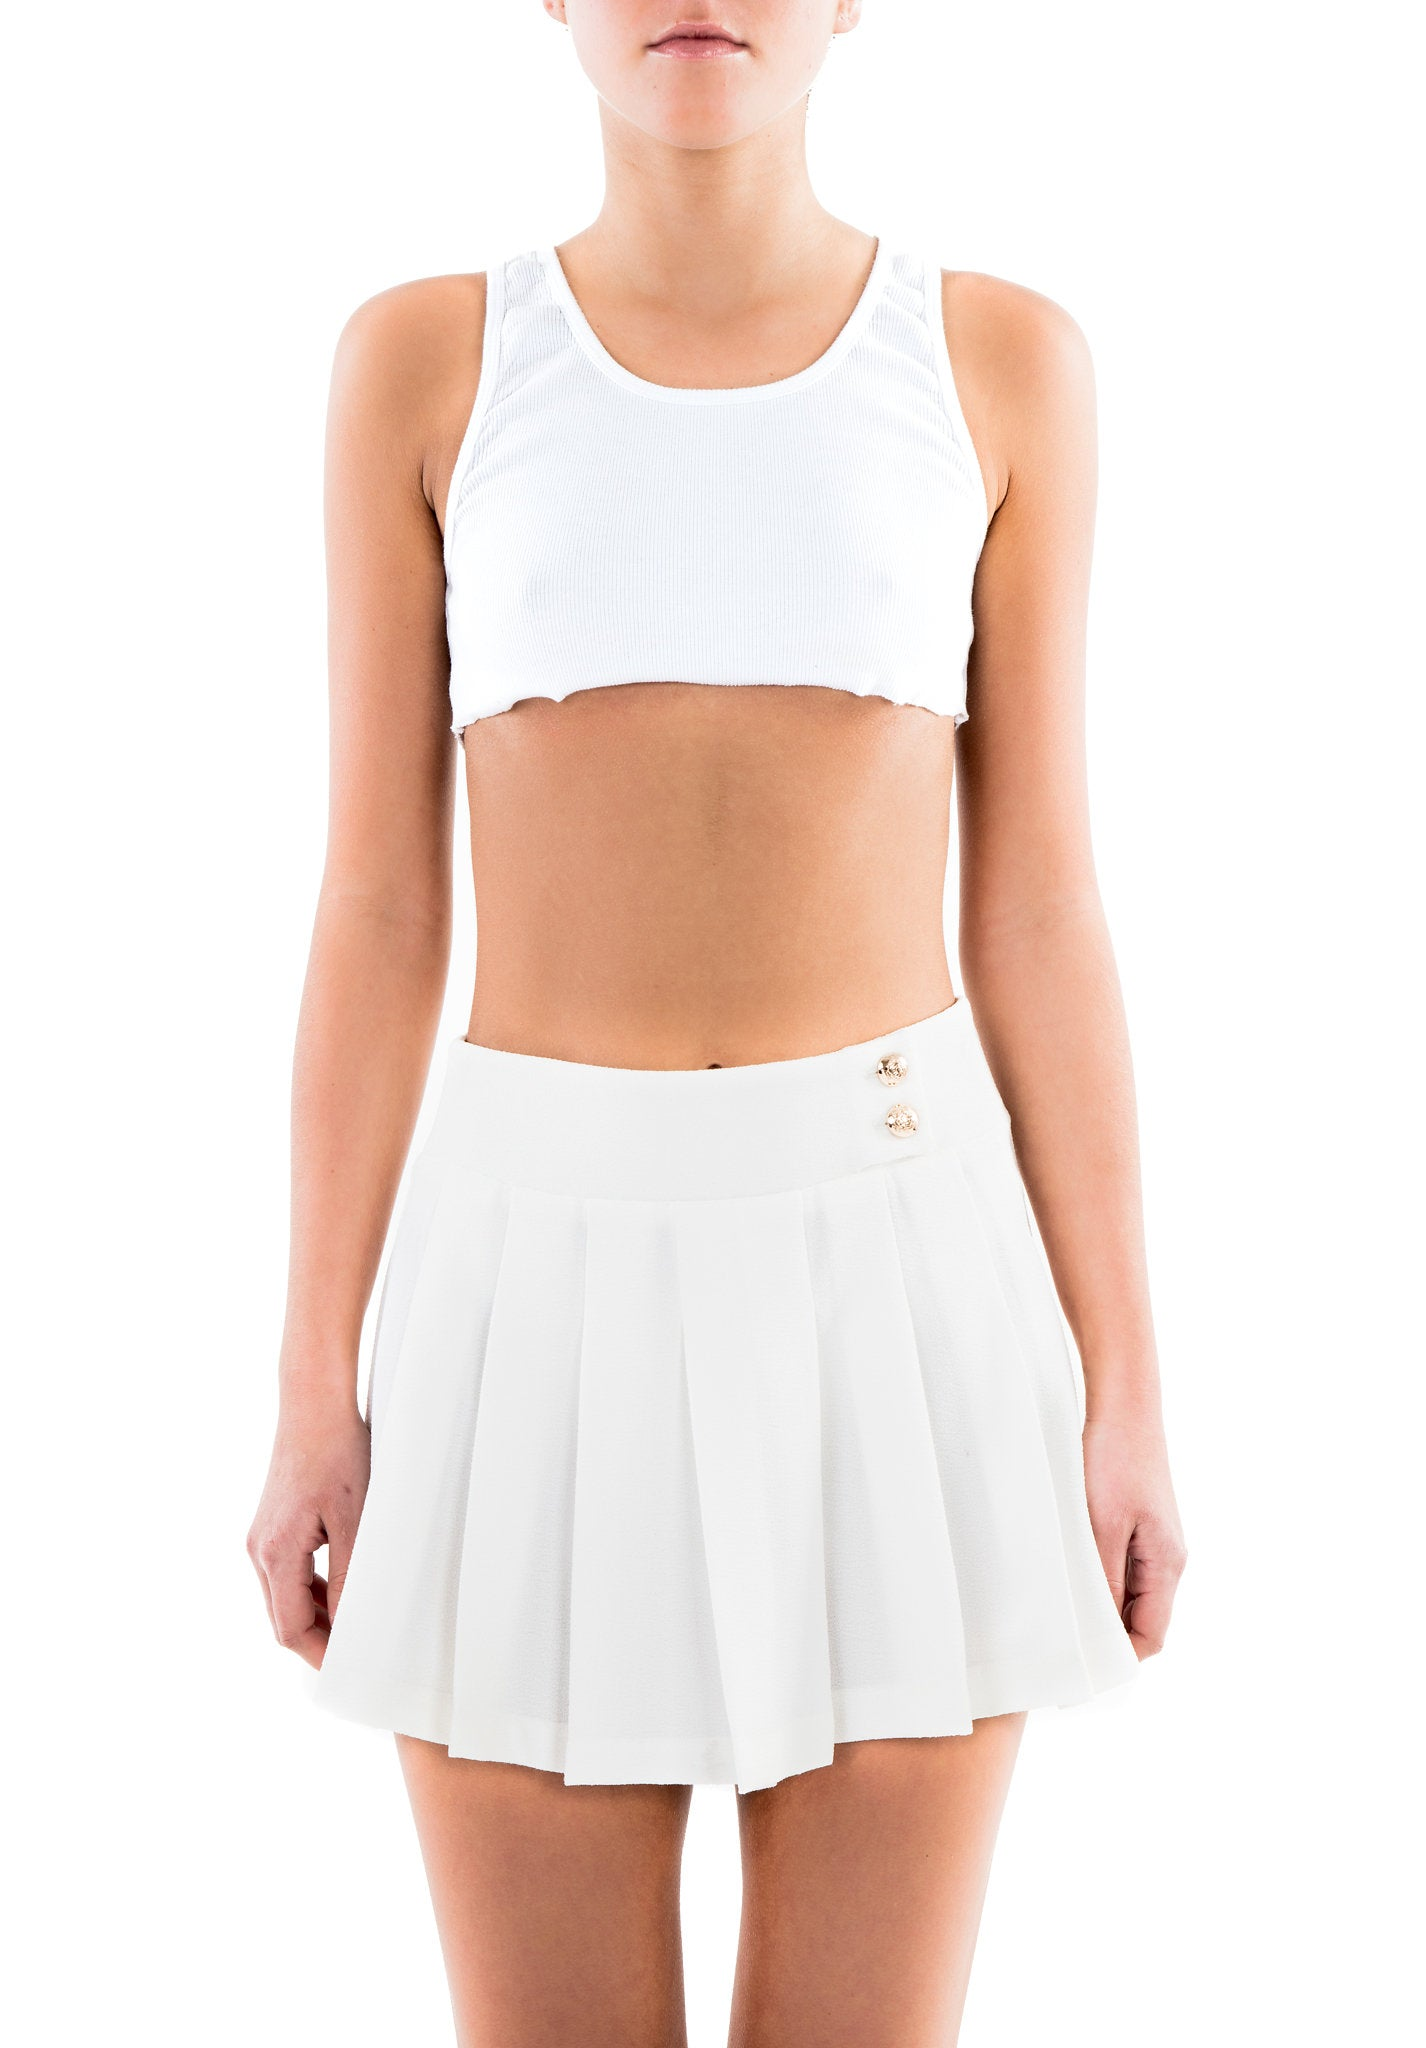 CHER skirt - white